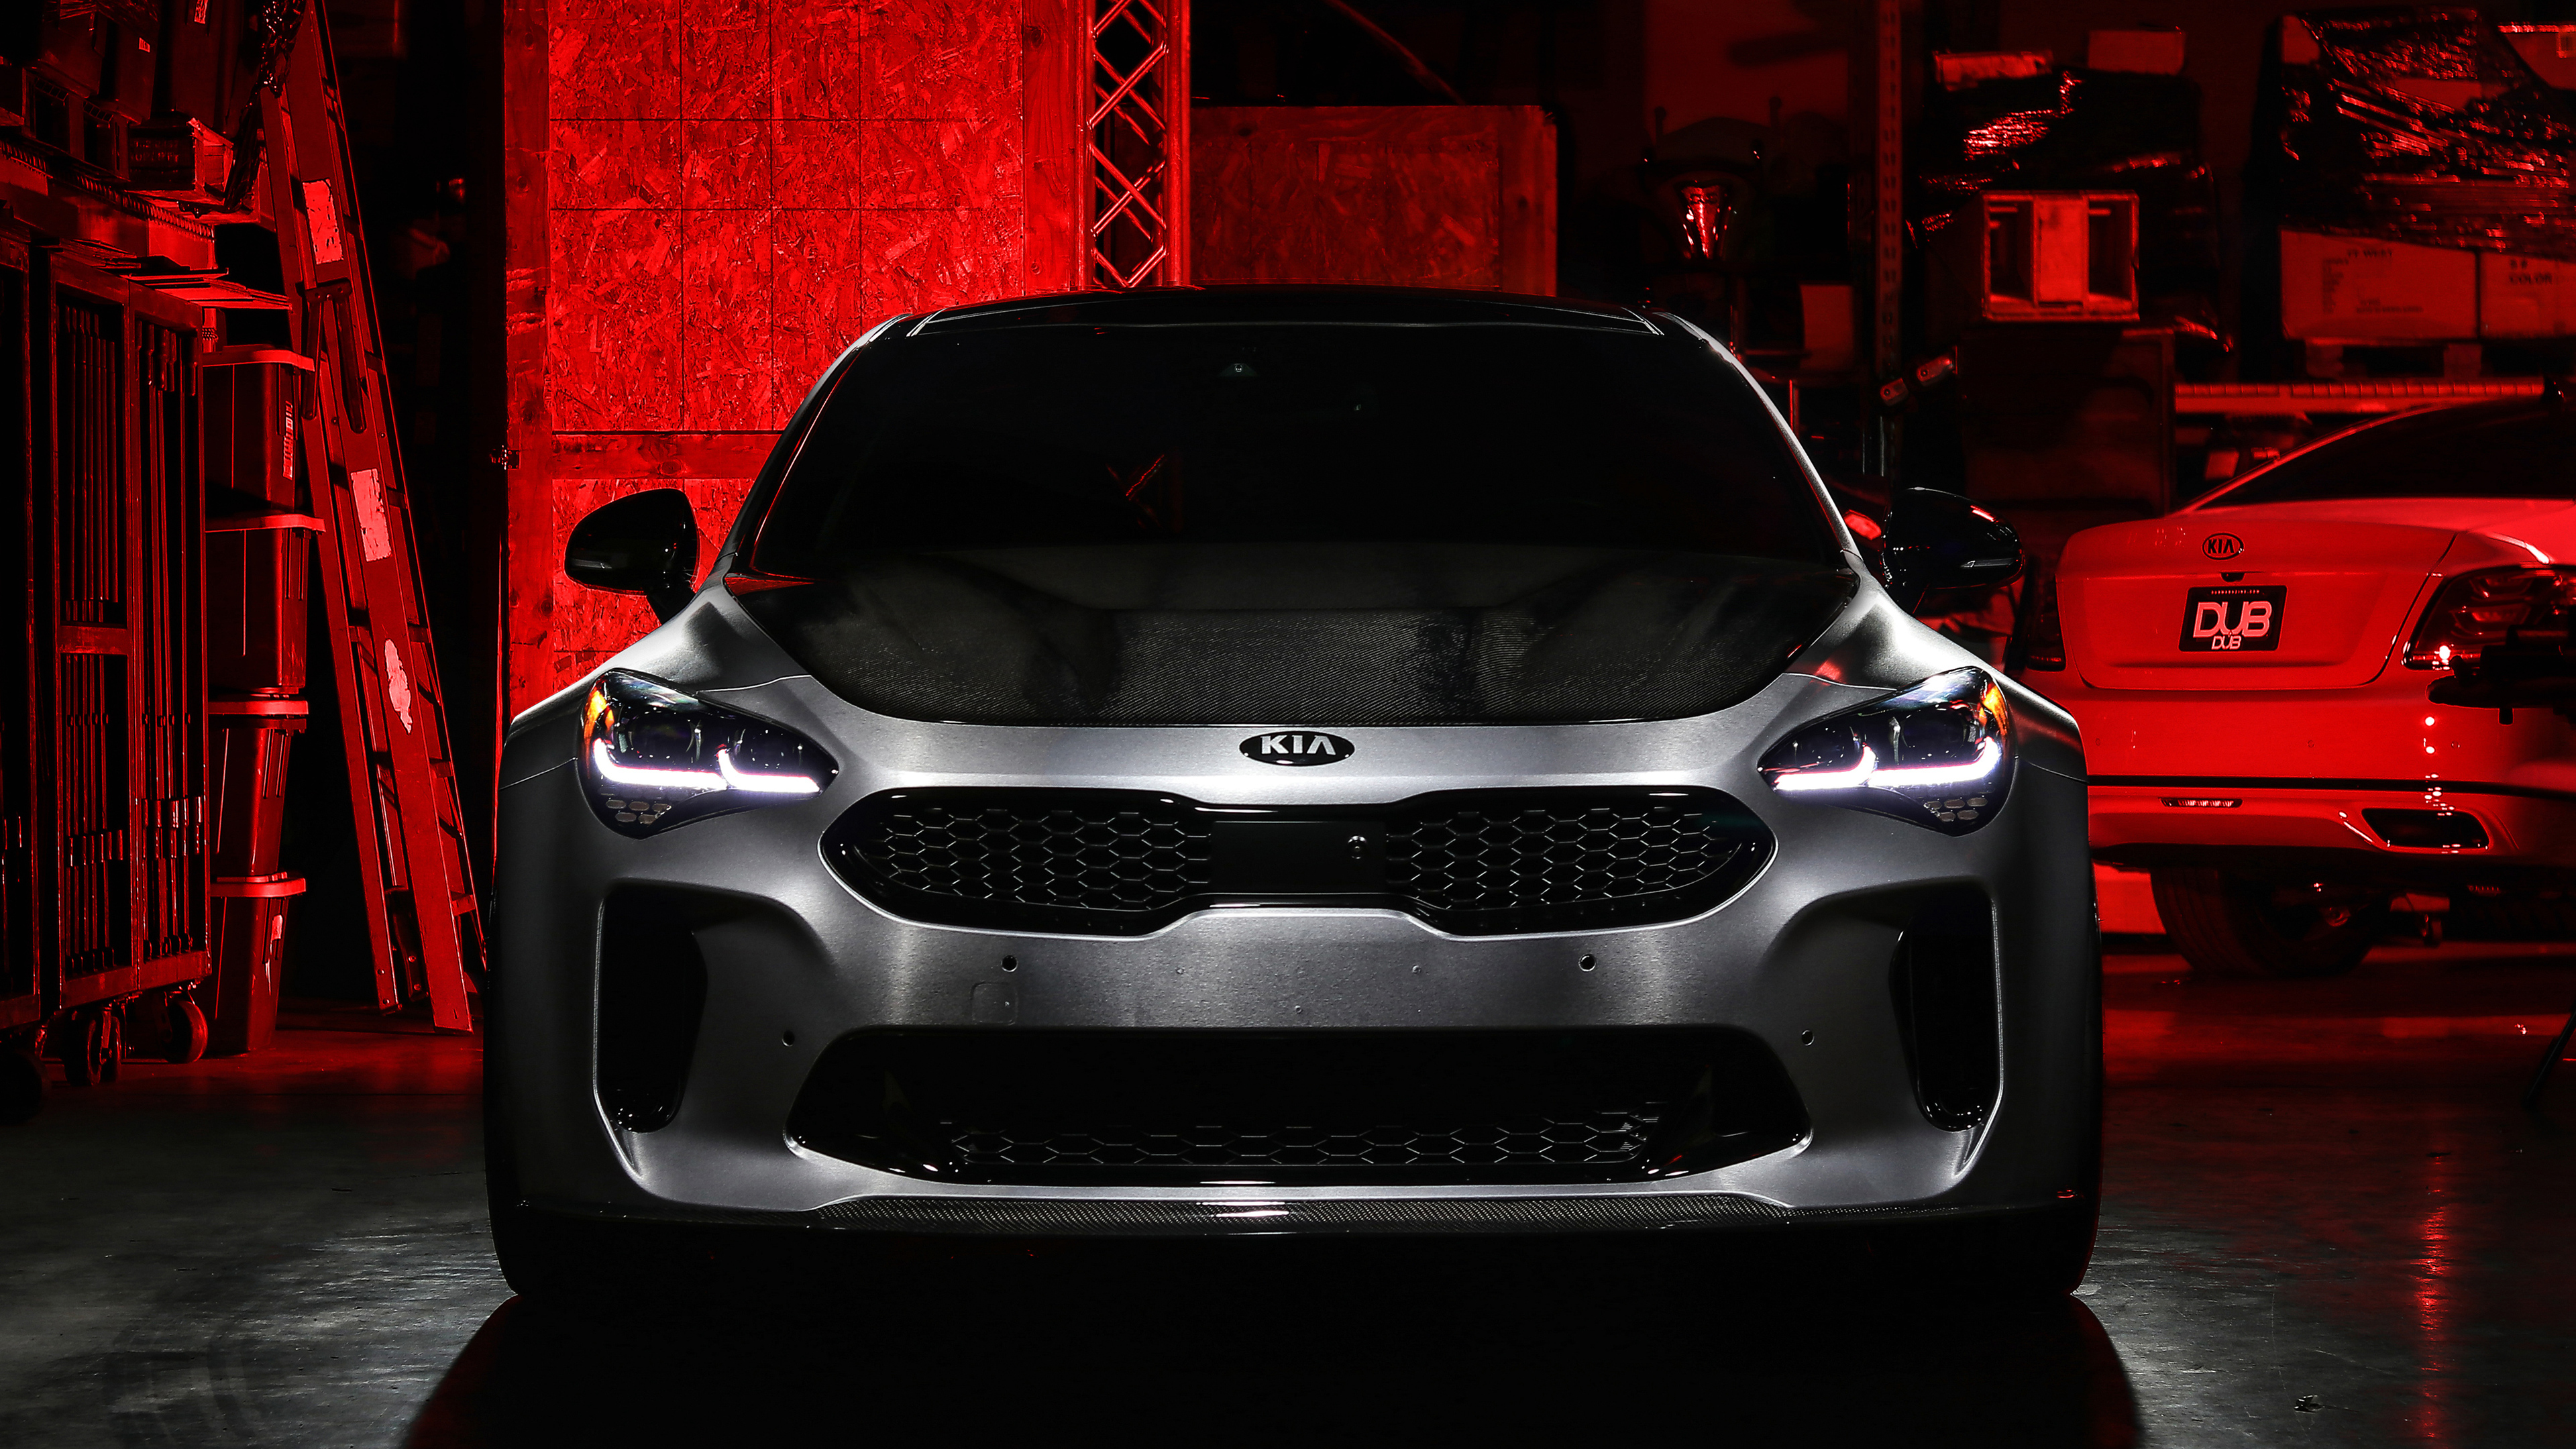 dub kia stinger gt 2018 front 1541969444 - DUB Kia Stinger GT 2018 Front - kia wallpapers, kia stinger wallpapers, hd-wallpapers, cars wallpapers, 4k-wallpapers, 2018 cars wallpapers